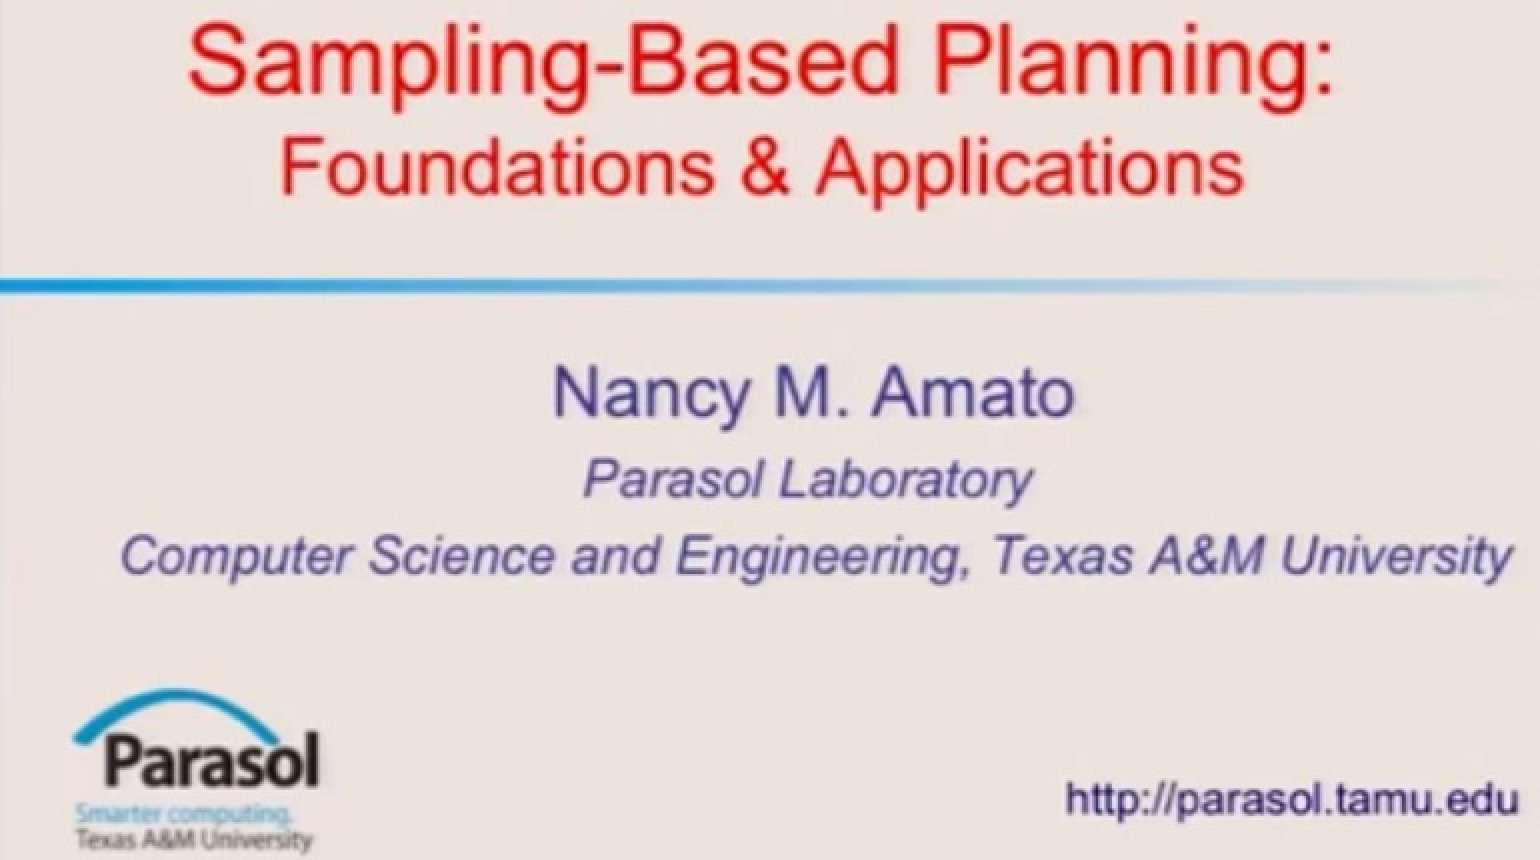 Sampling-Based Planning Foundations & Applications